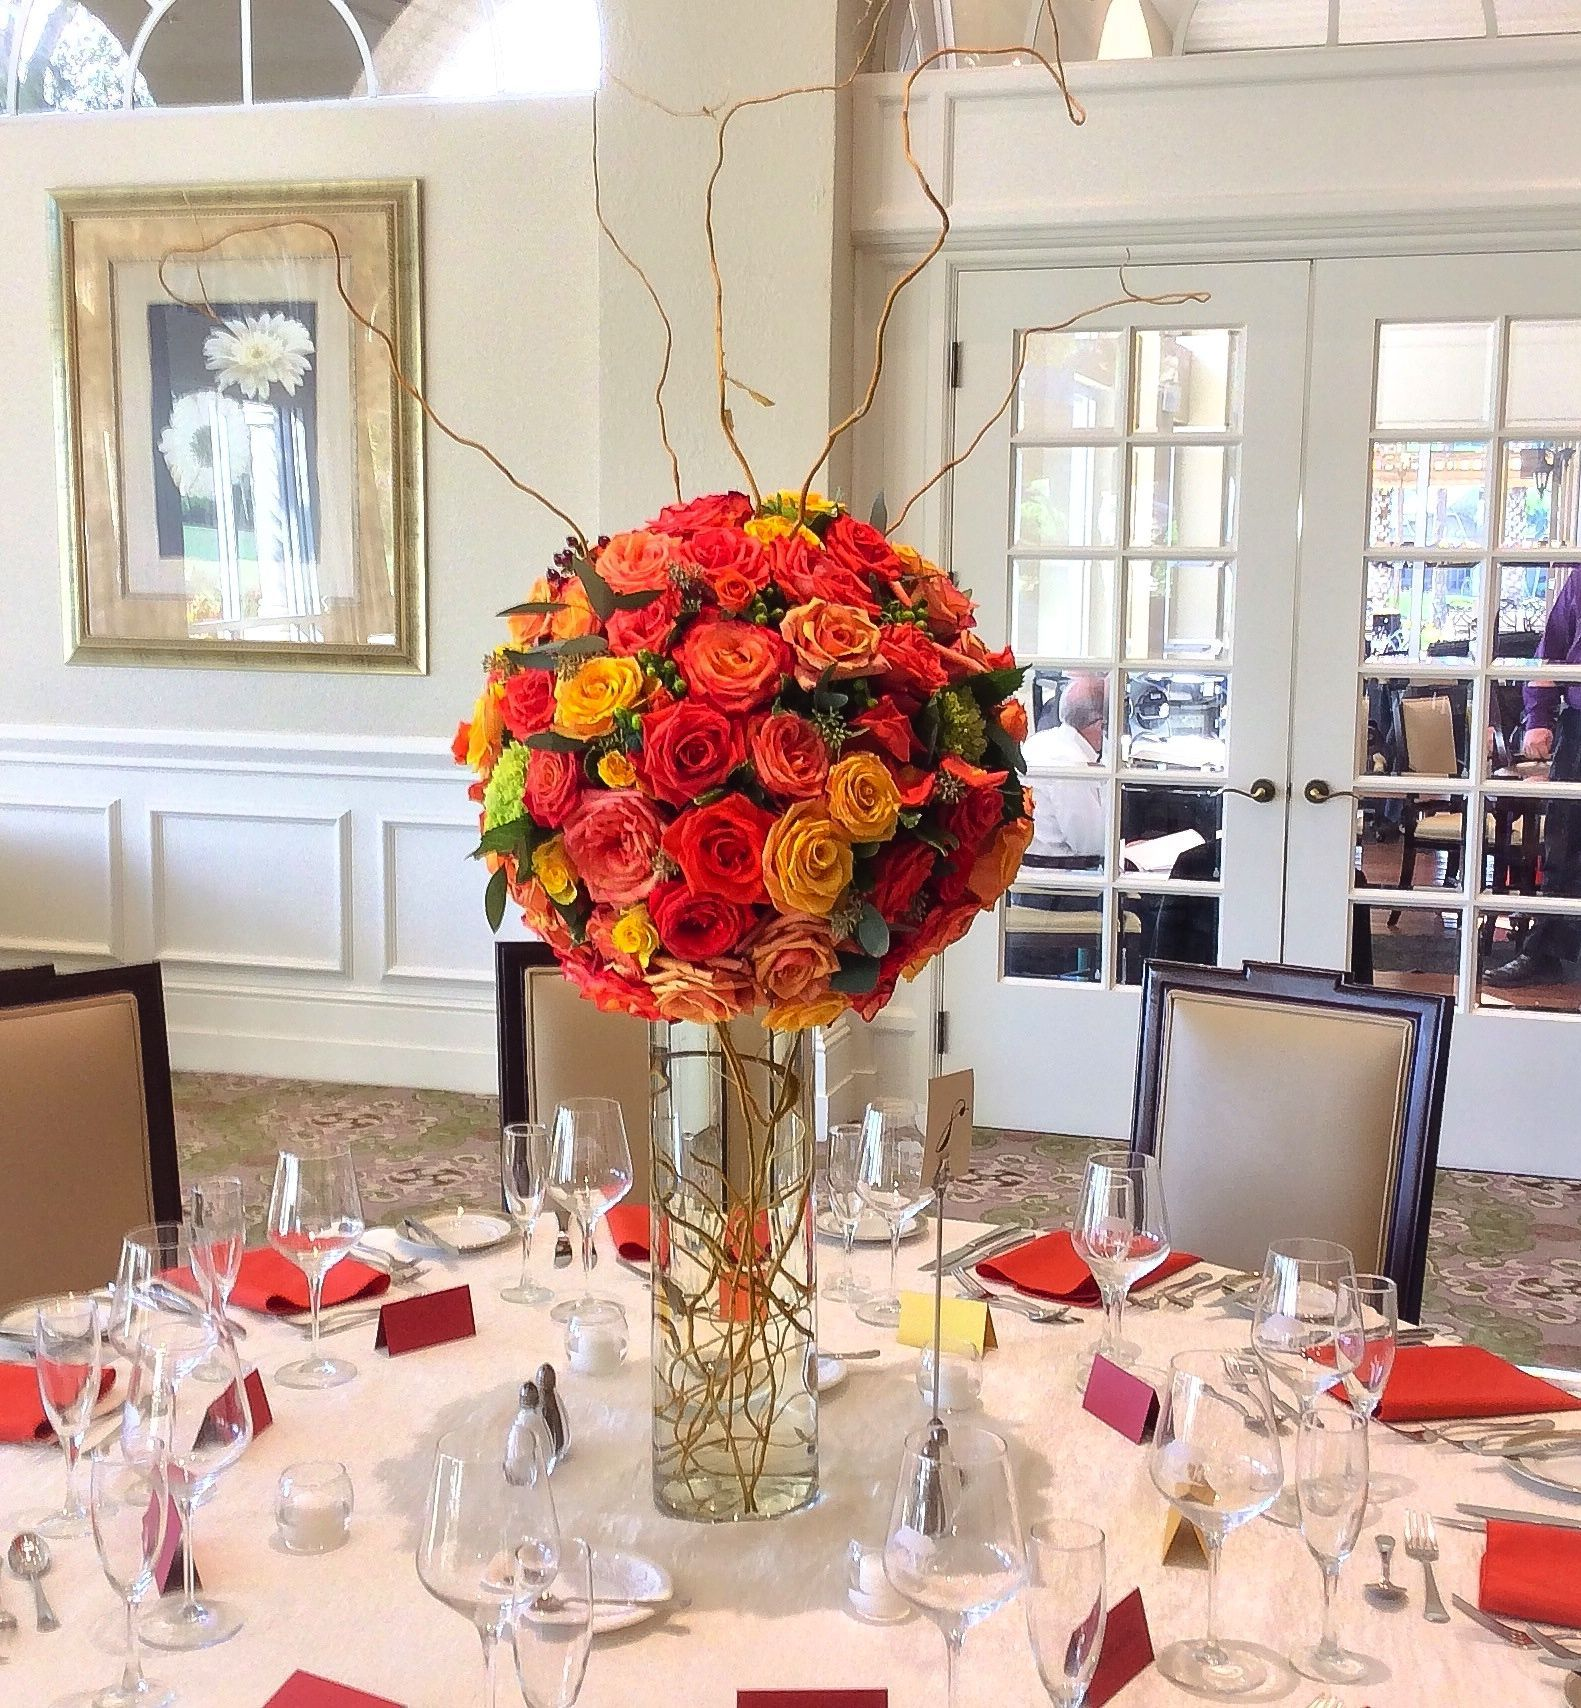 Wedding Table Floral Centerpieces- Fall Wedding Table Decor Designed By